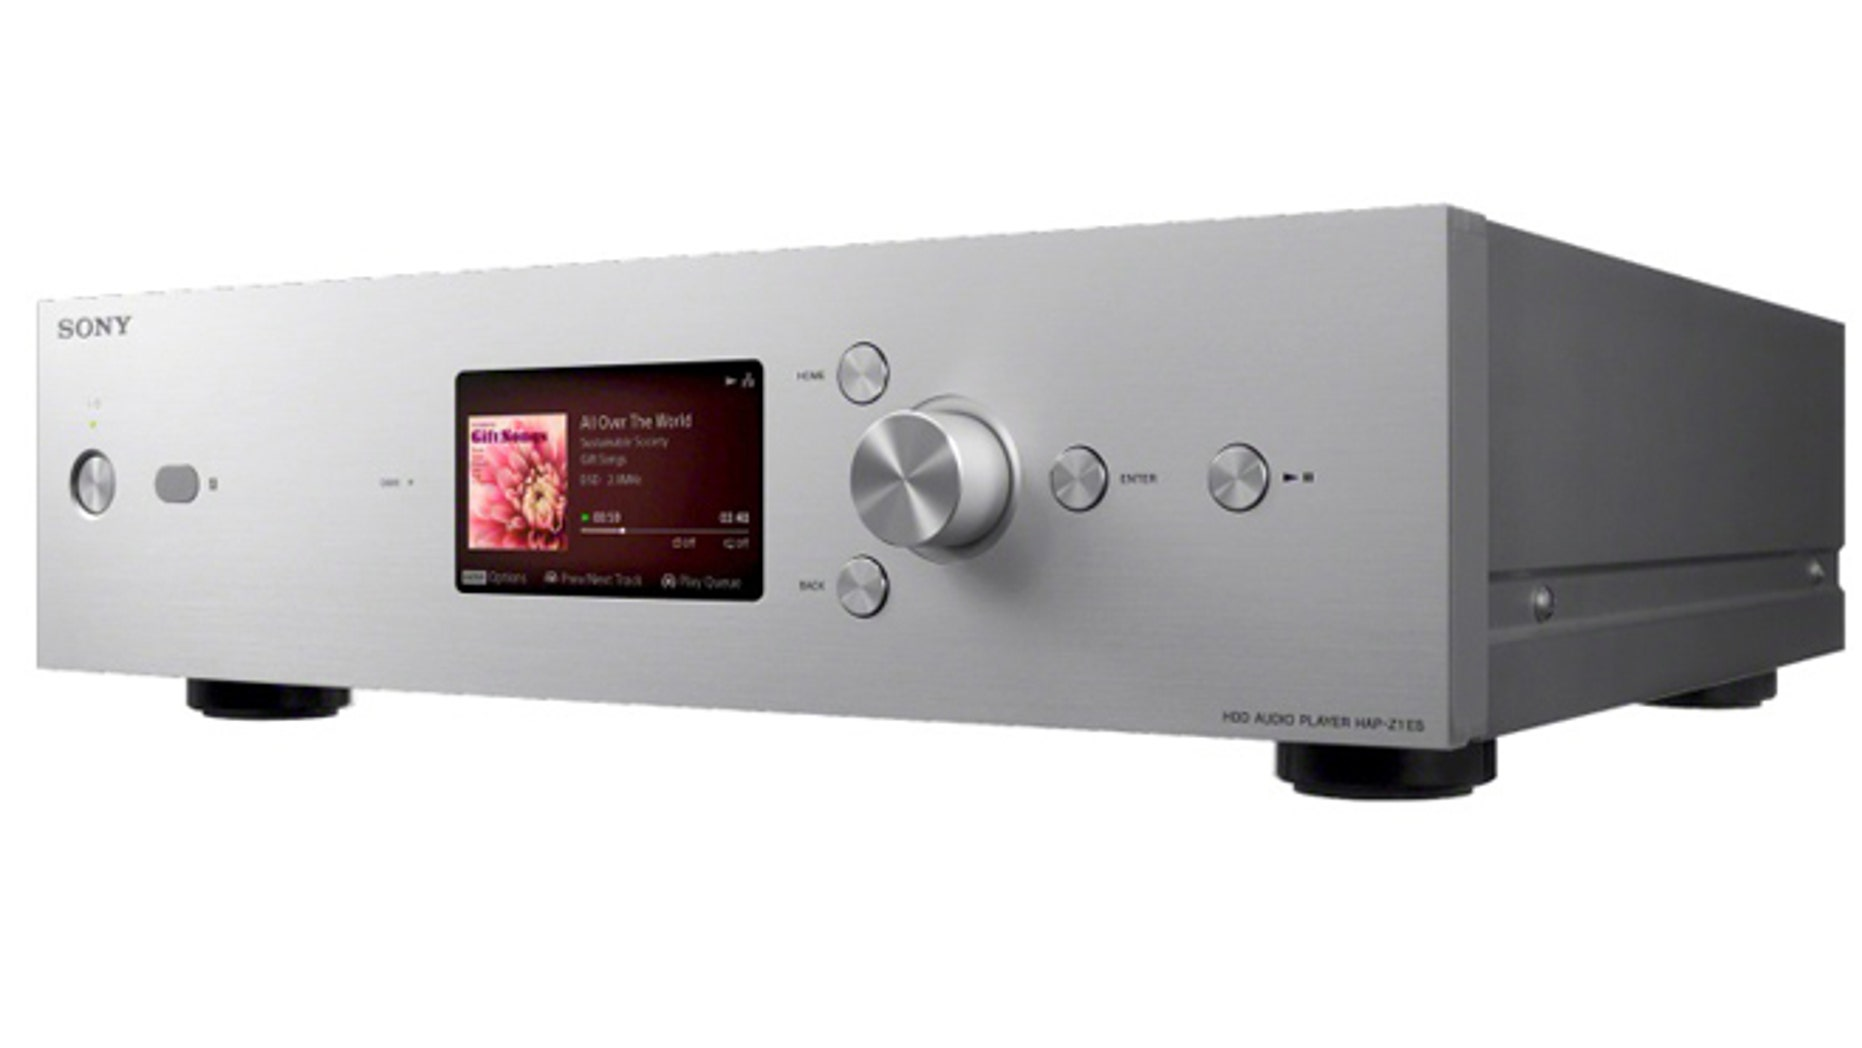 The Sony HAP-Z1ES, a music player that can handle high-resolution DSD audio files and won an Innovation award at the 2014 CES.